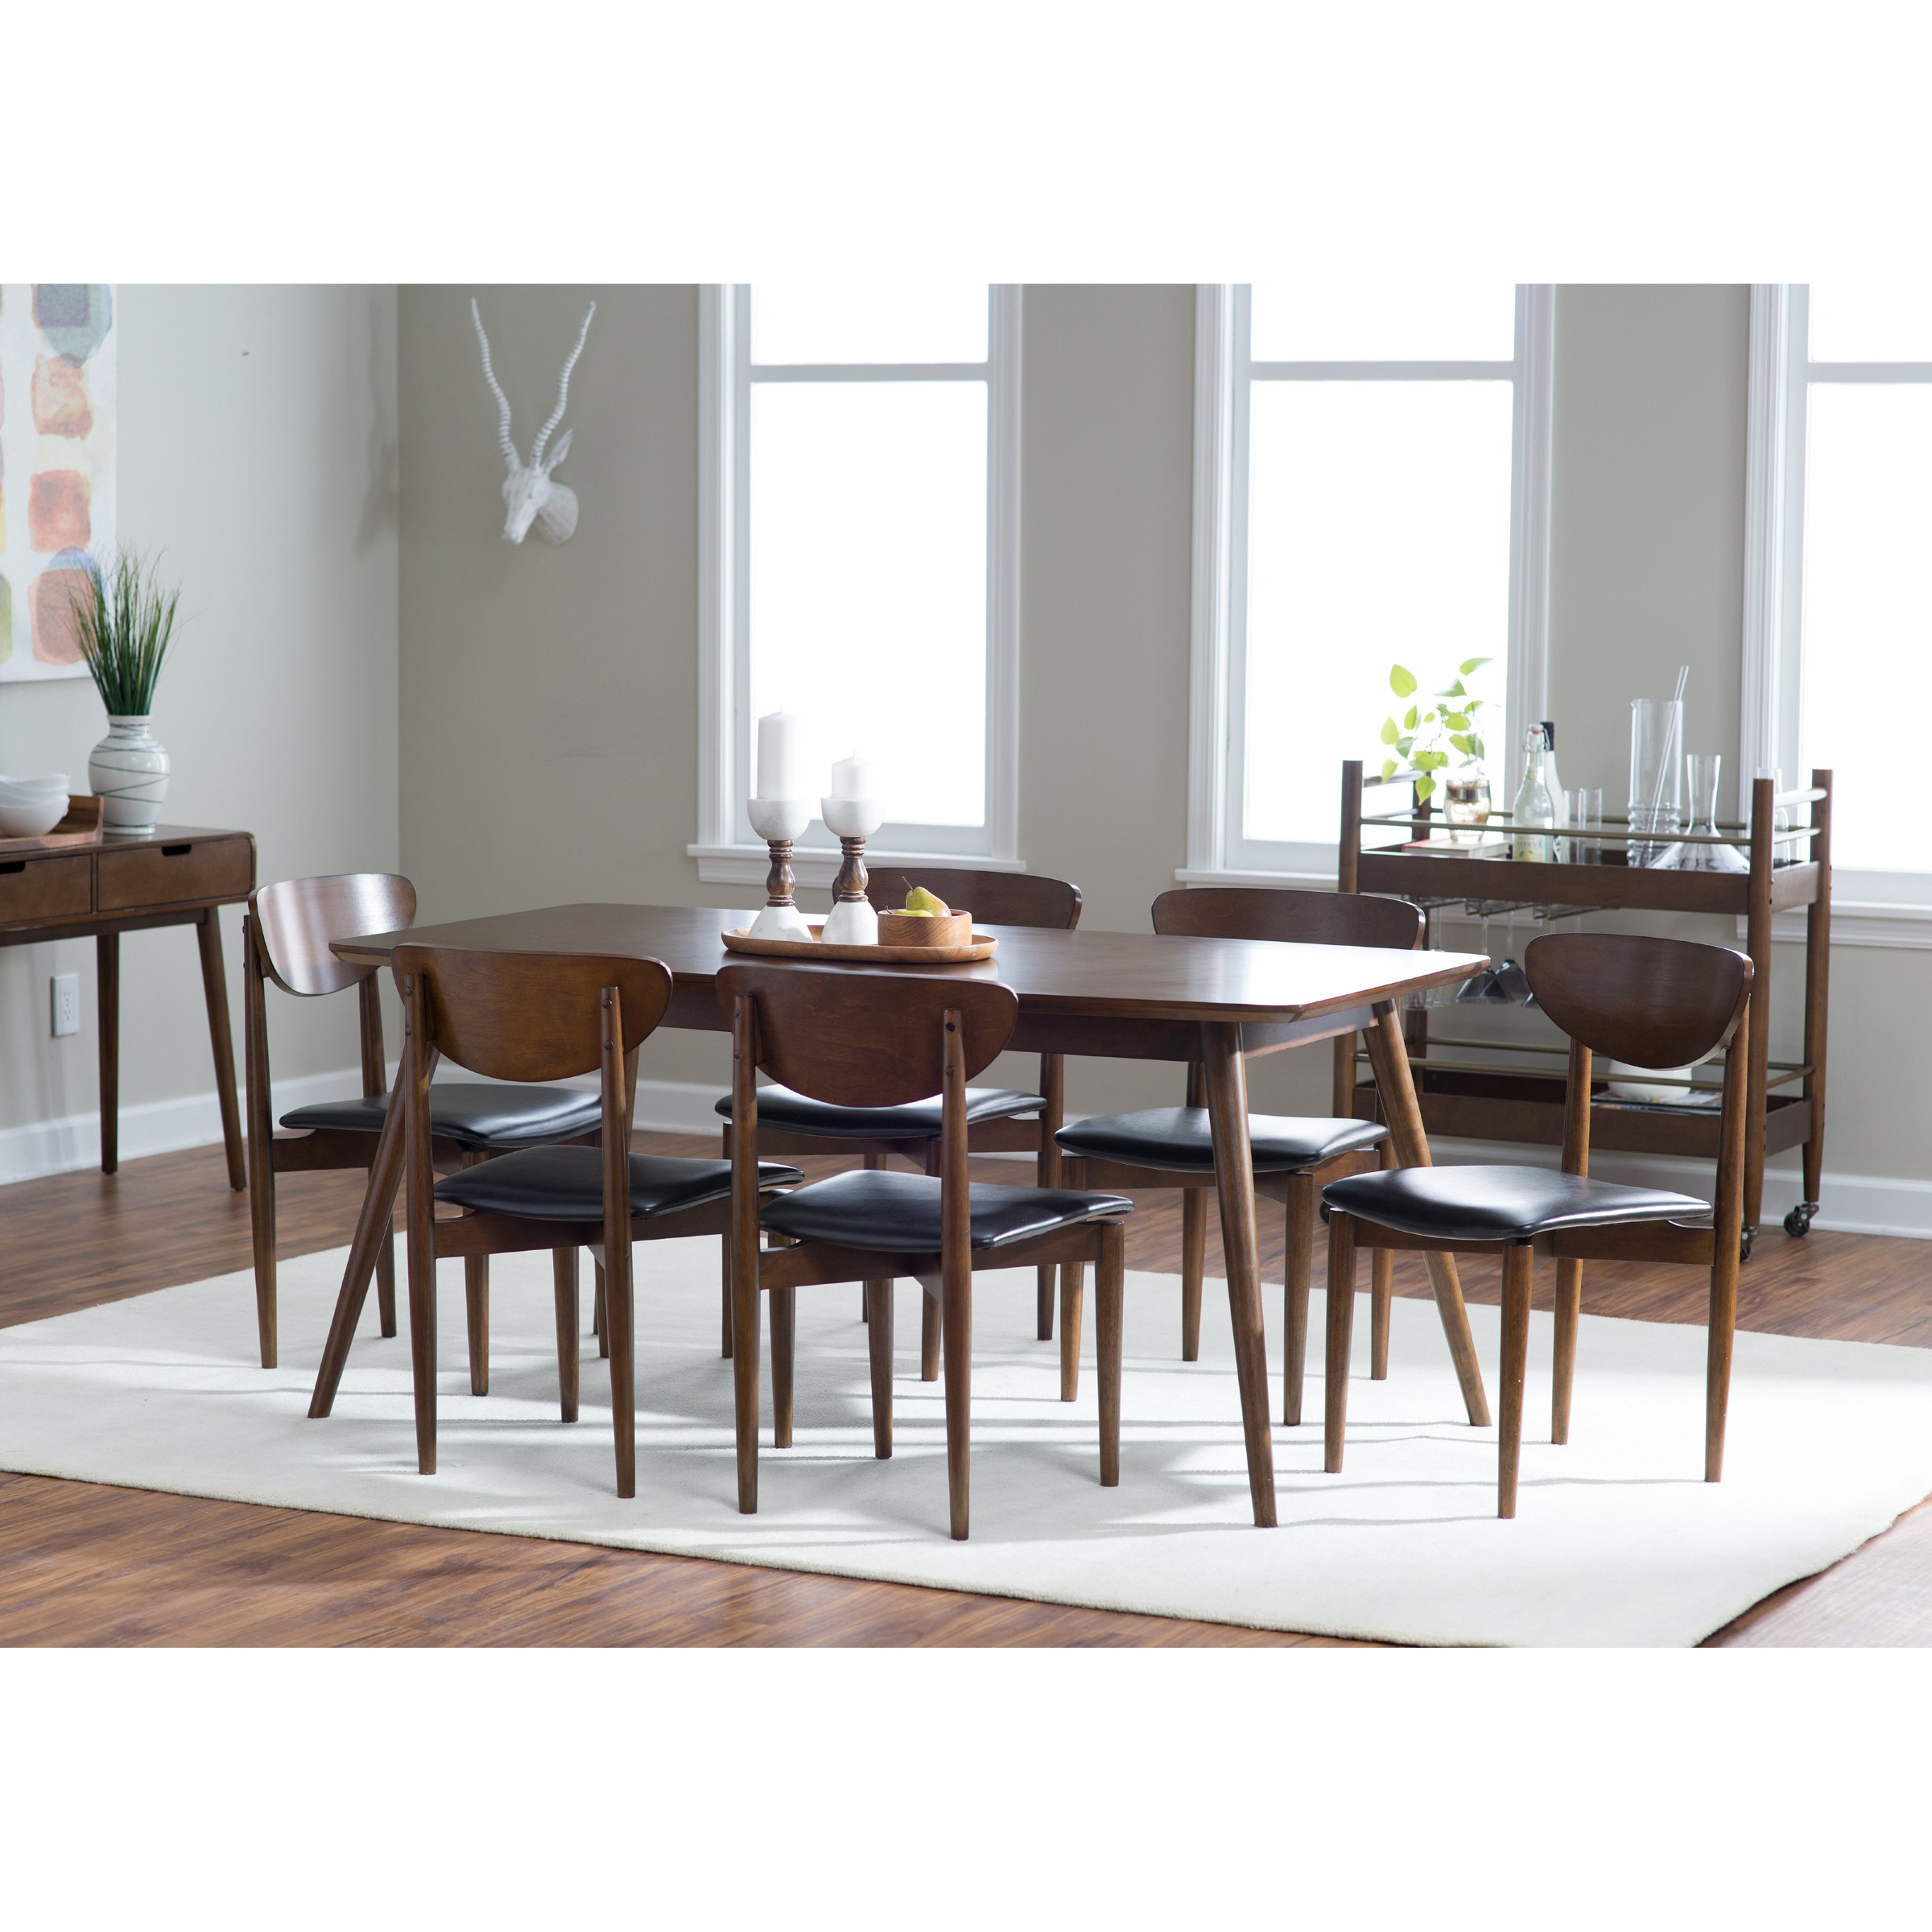 Exceptionnel Belham Living Carter Collection Rectangular Dining Set. QUICK VIEW